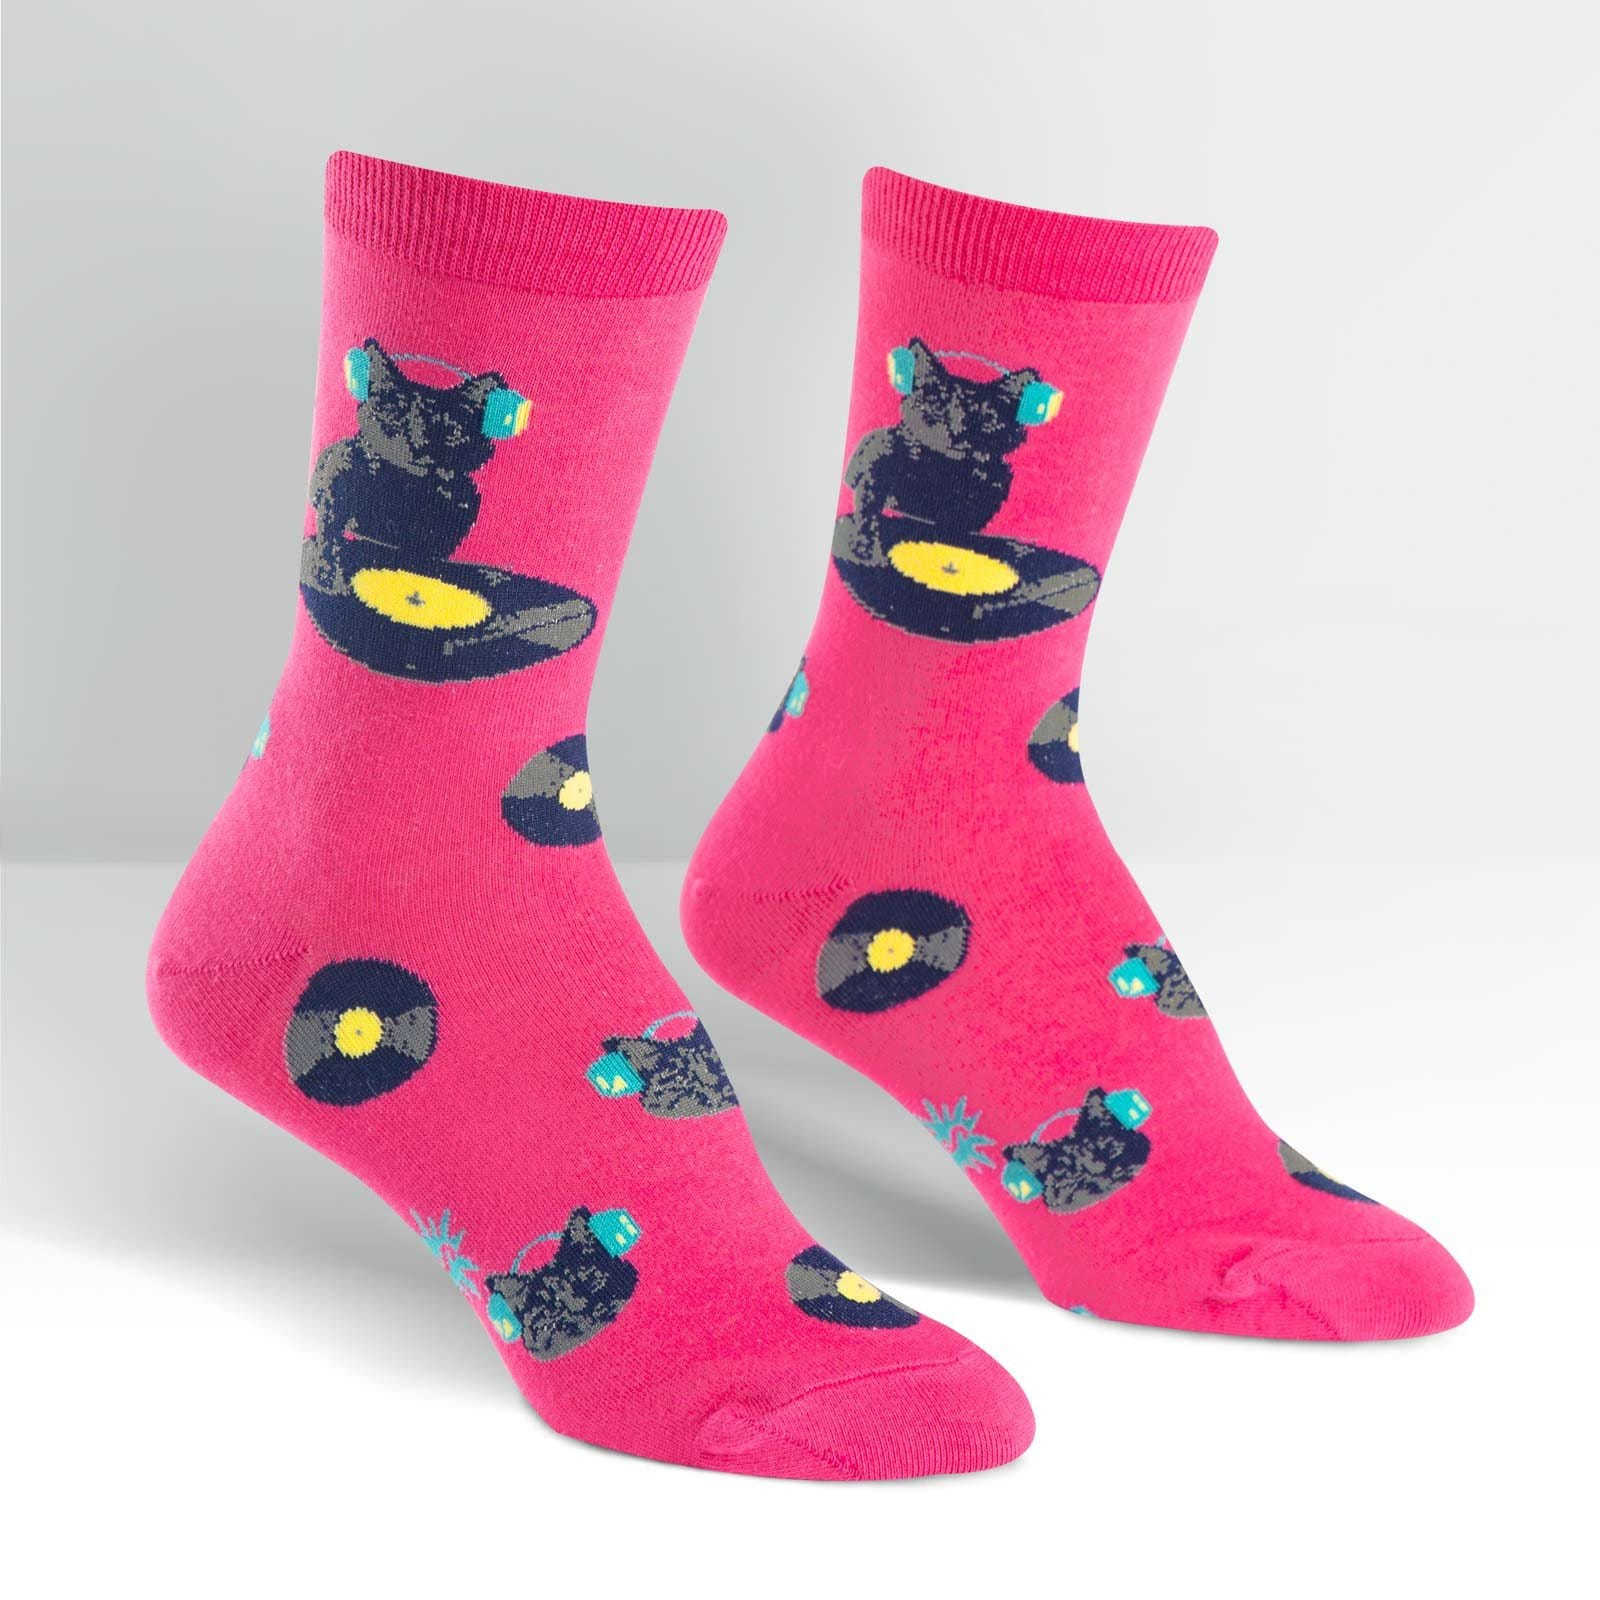 cat in socks Former first cat socks, one of the world s most famous felines, died friday at the age of 20 after battling throat cancer since november a stray cat rescued by the clinton's daughter, chelsea.